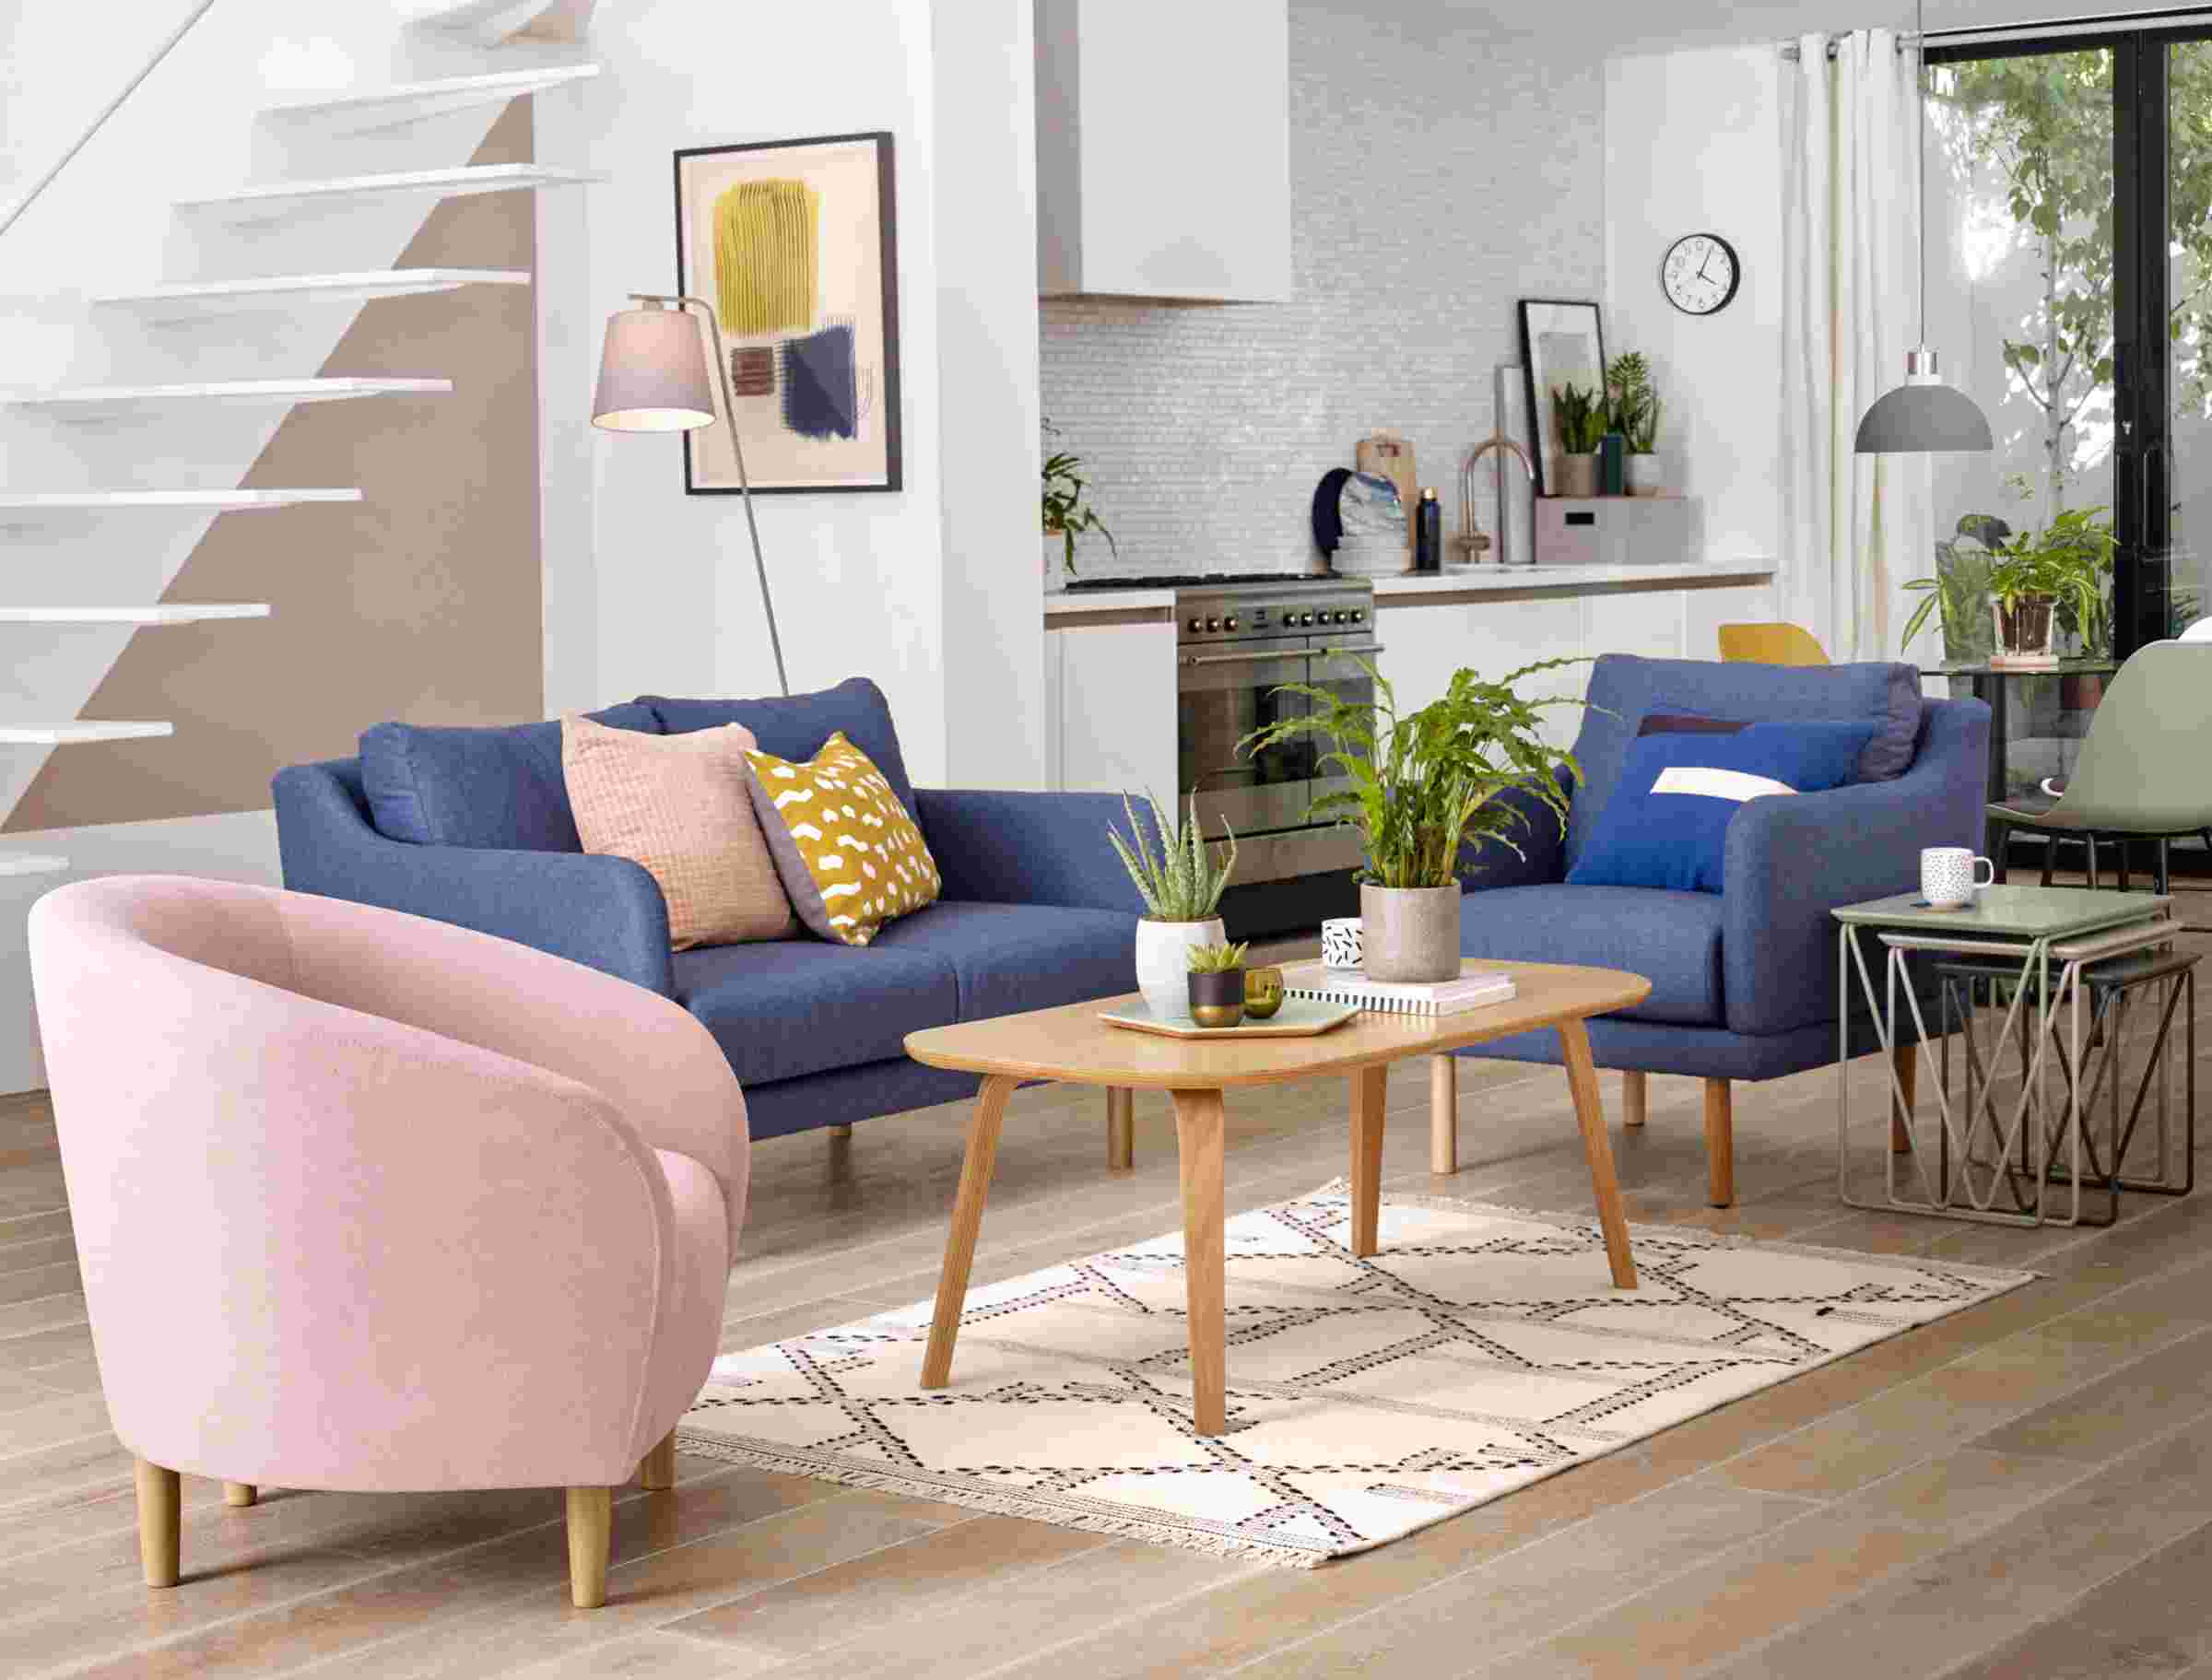 Living room with pink and blue chairs